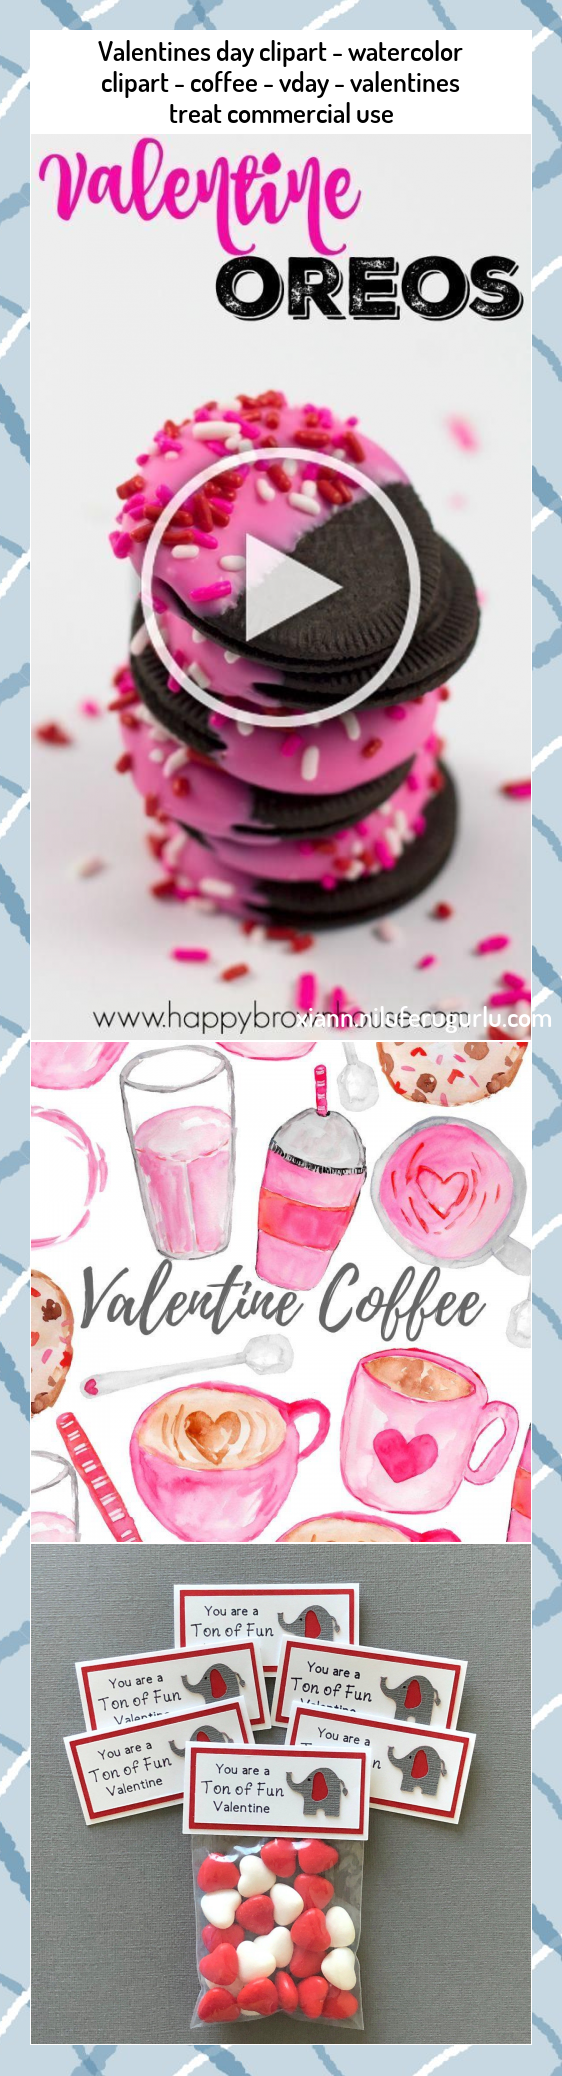 Valentines day clipart - watercolor clipart - coffee - vday - valentines treat commercial use #Valentines #day #clipart #watercolor #clipart #coffee #vday #valentines #treat #commercial #use